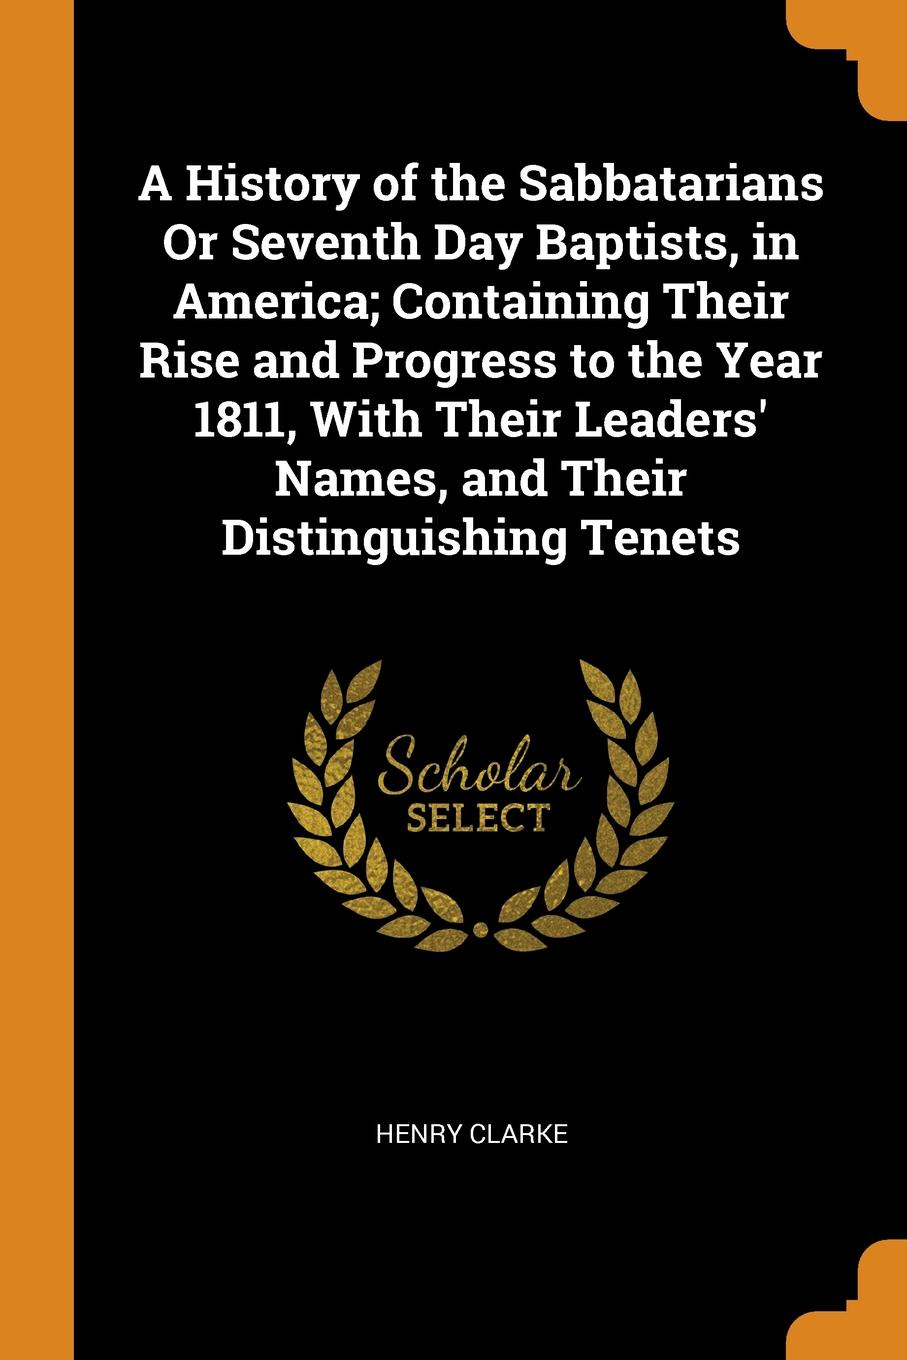 A-History-of-the-Sabbatarians-Or-Seventh-Day-Baptists-in-America-Containing-Their-Rise-and-Progress-to-the-Year-1811-With-Their-Leaders-Names-and-Thei